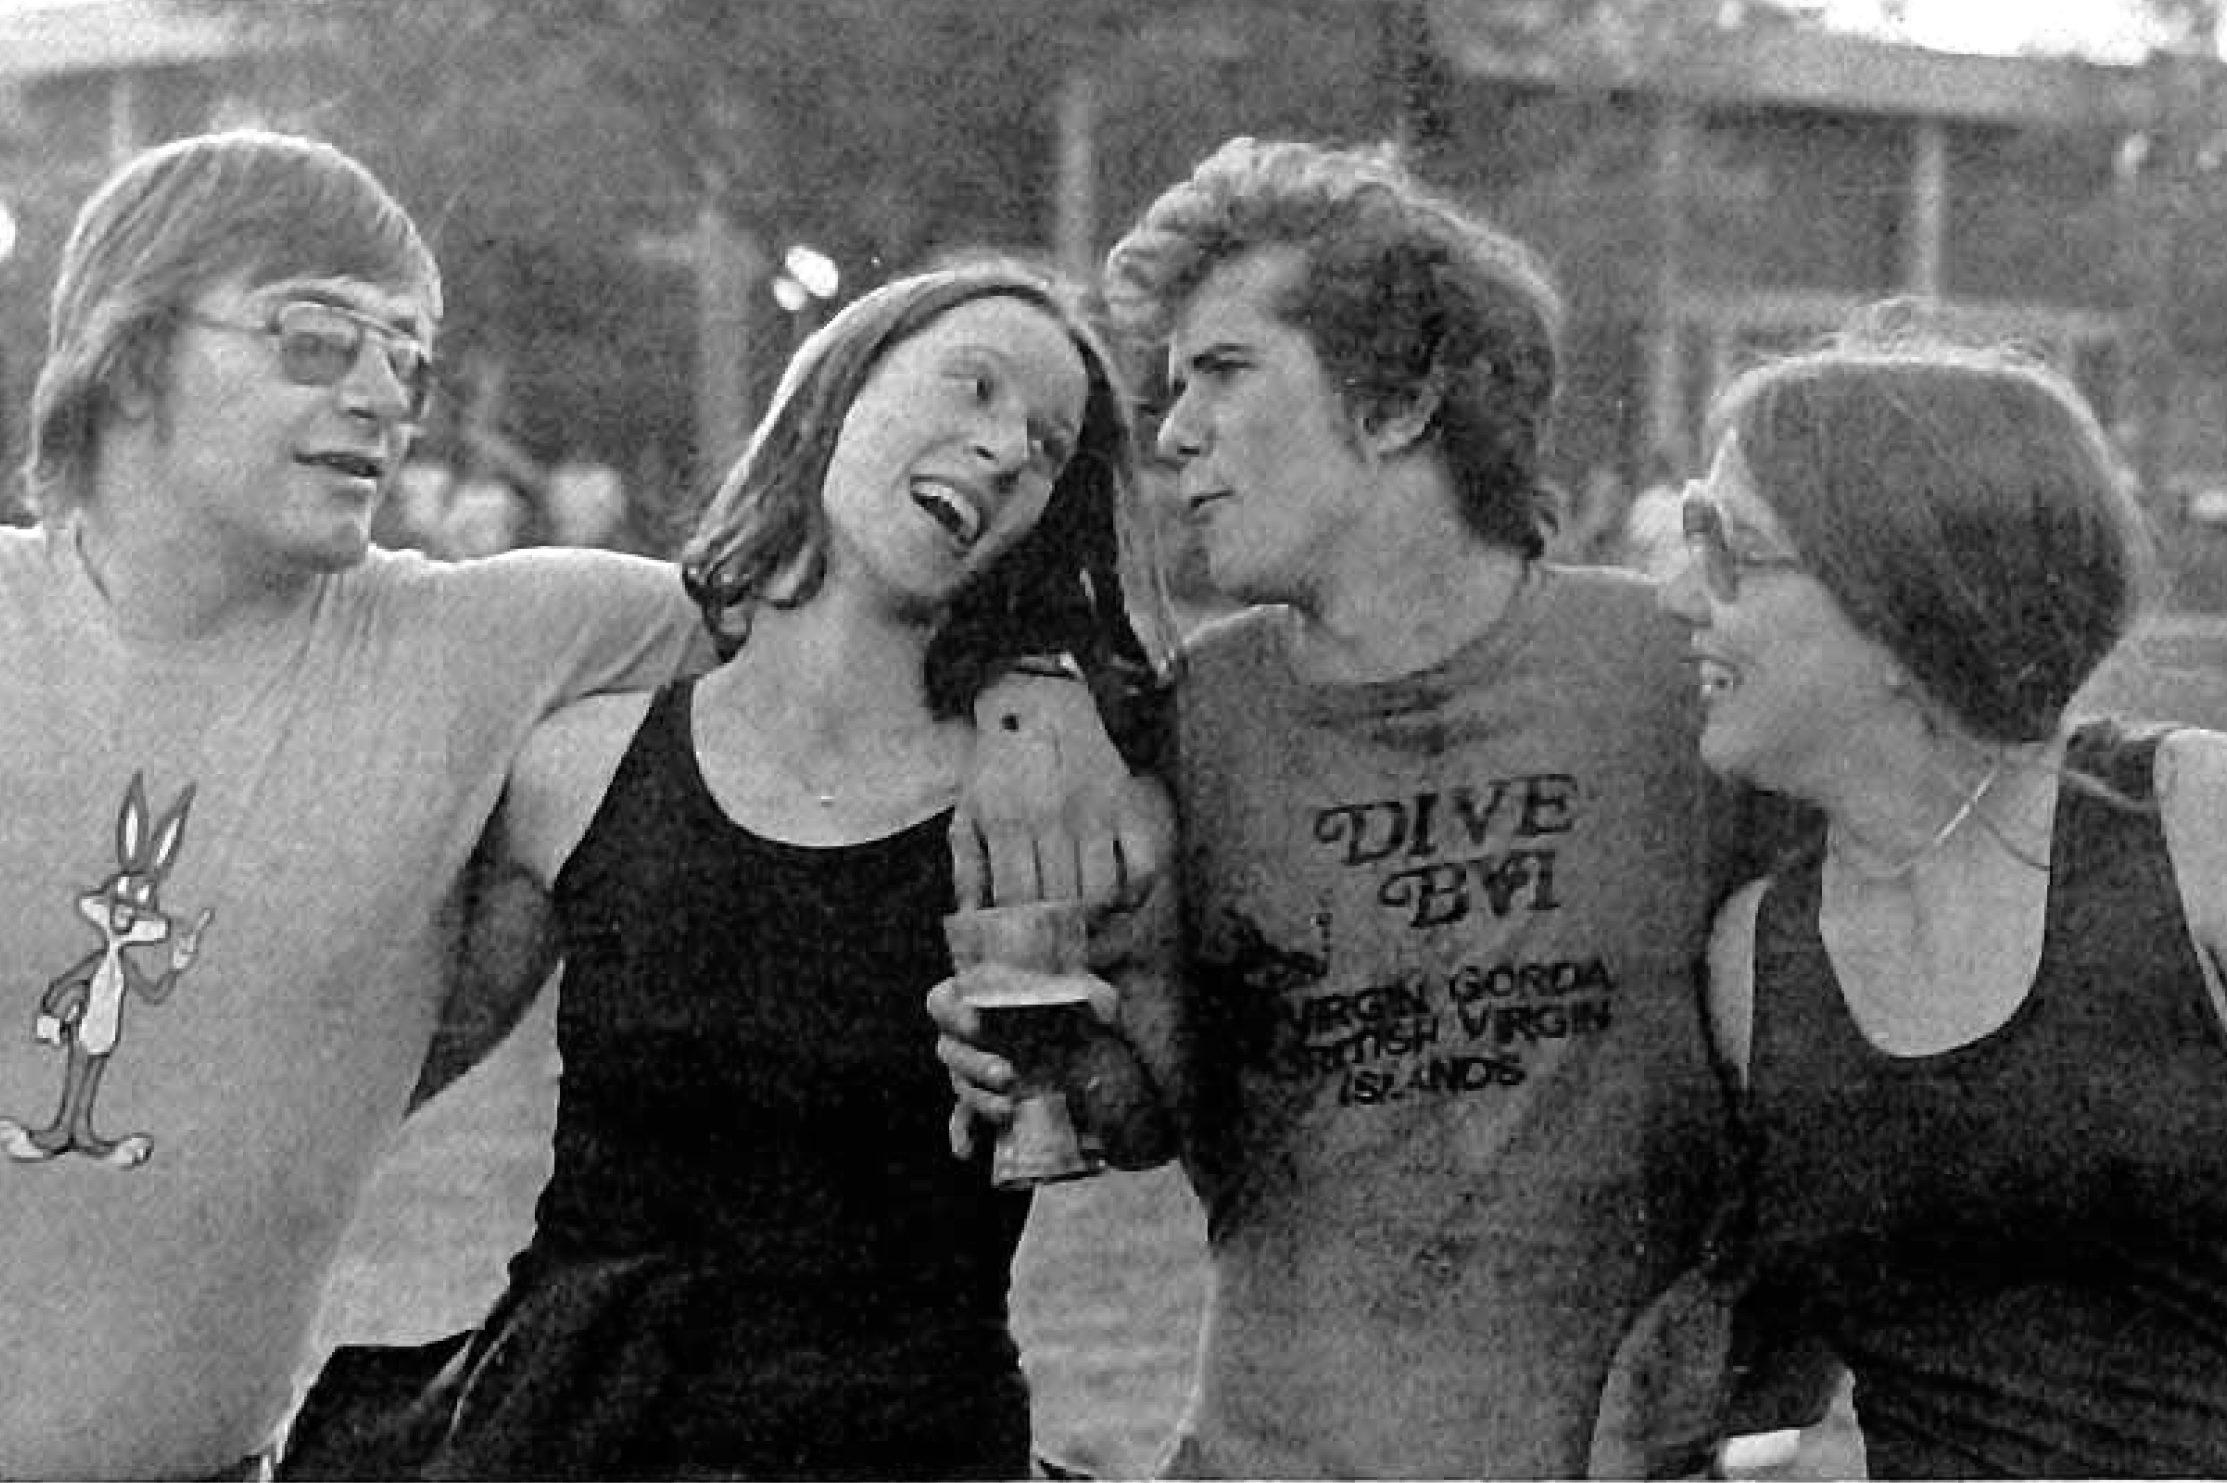 Uncredited Mac Weekly photo of Springfest 1977.